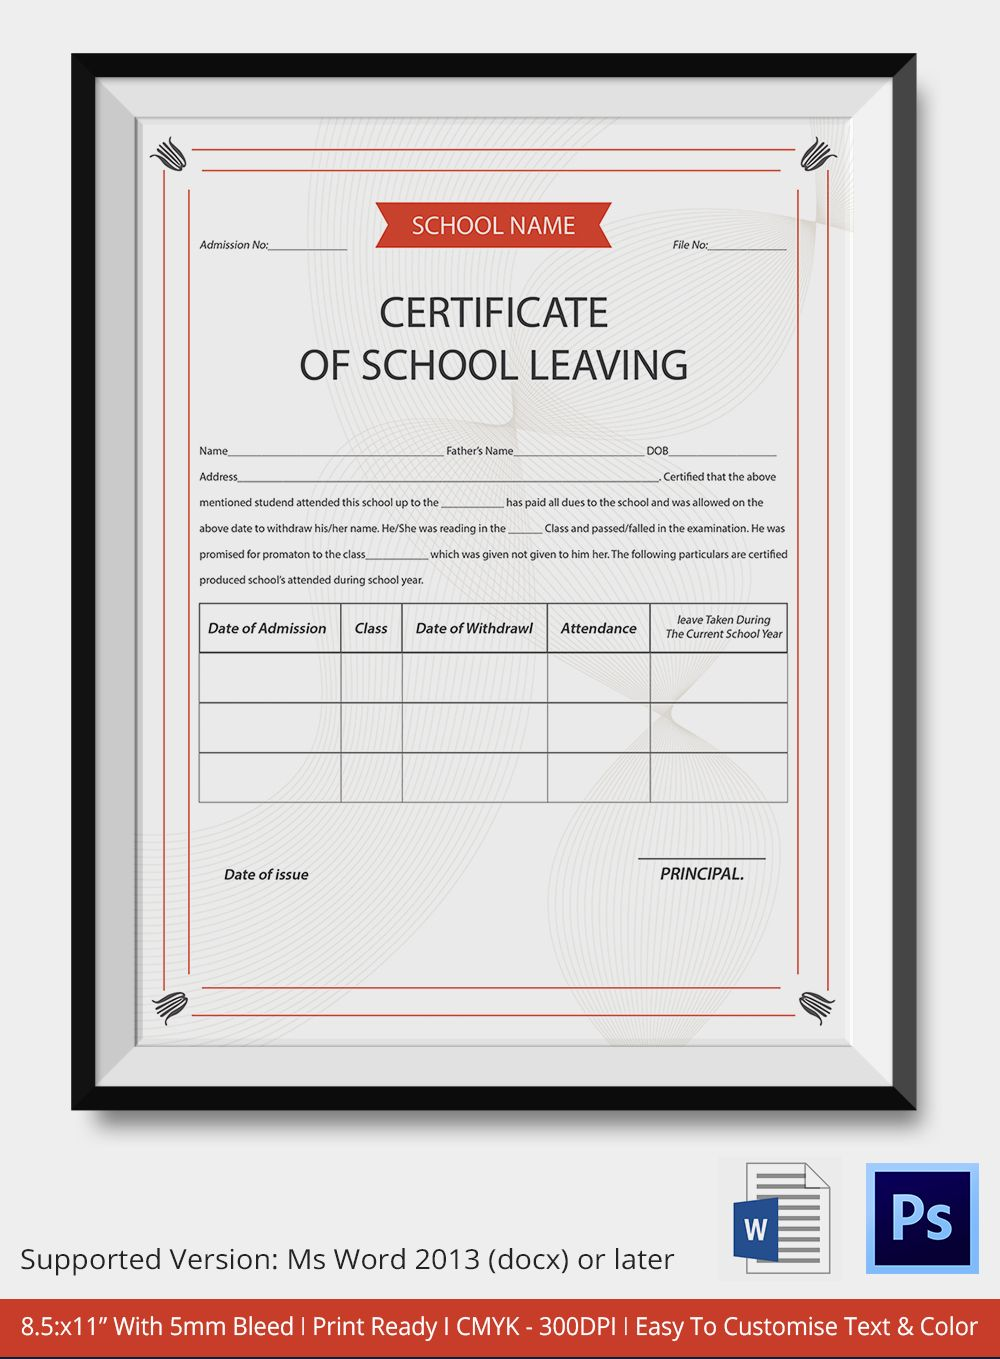 School leaving certificate template certificate templates school leaving certificate template yadclub